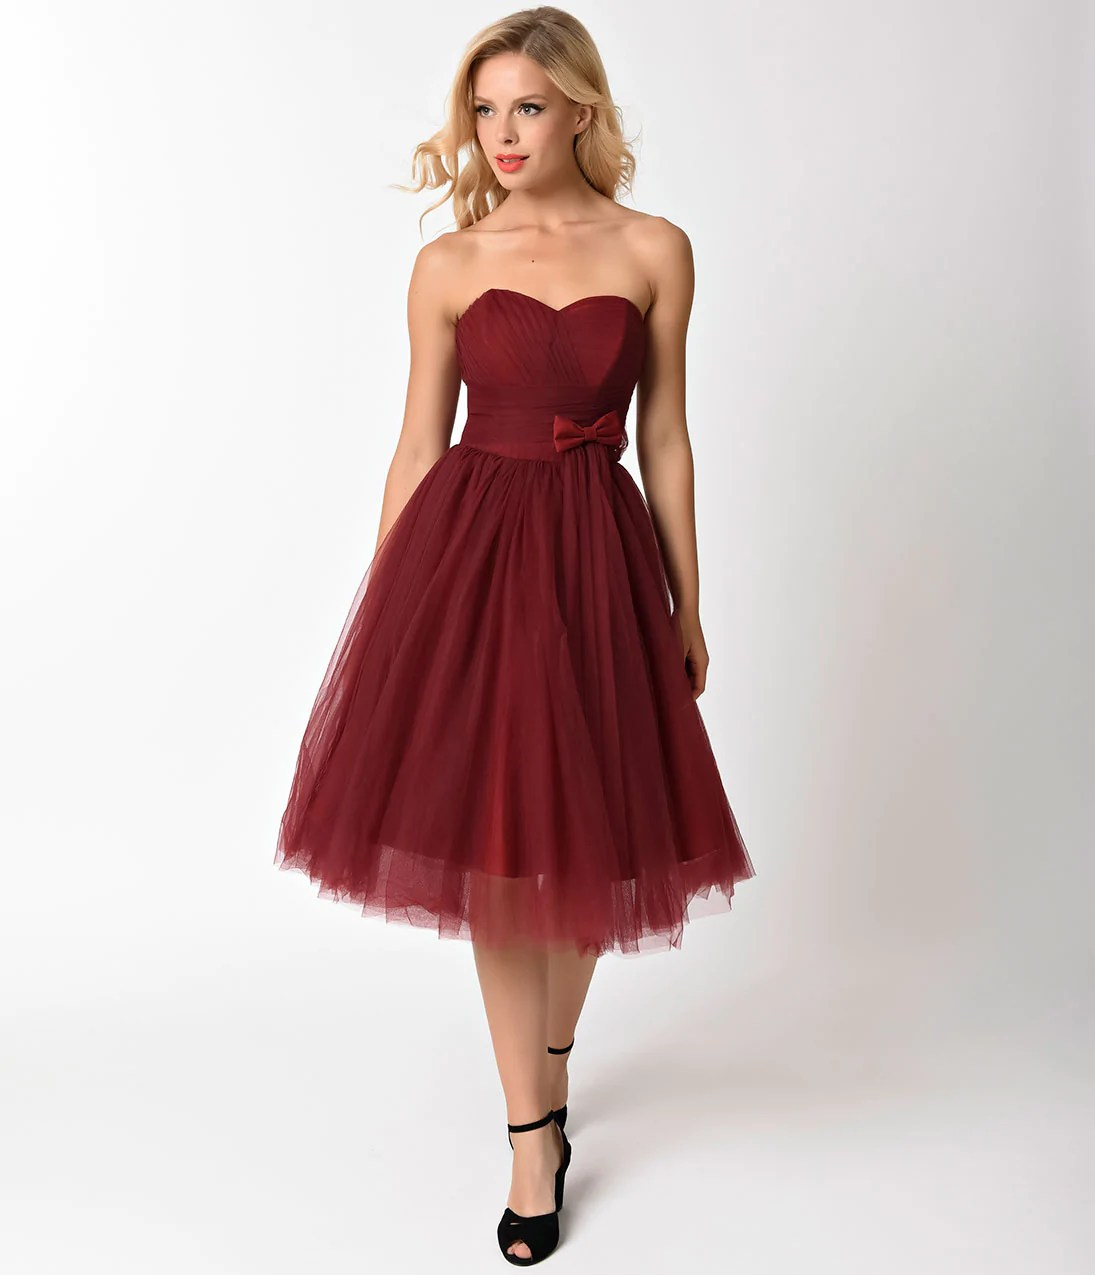 Vintage Evening Dresses And Gowns- 1920s 1960s